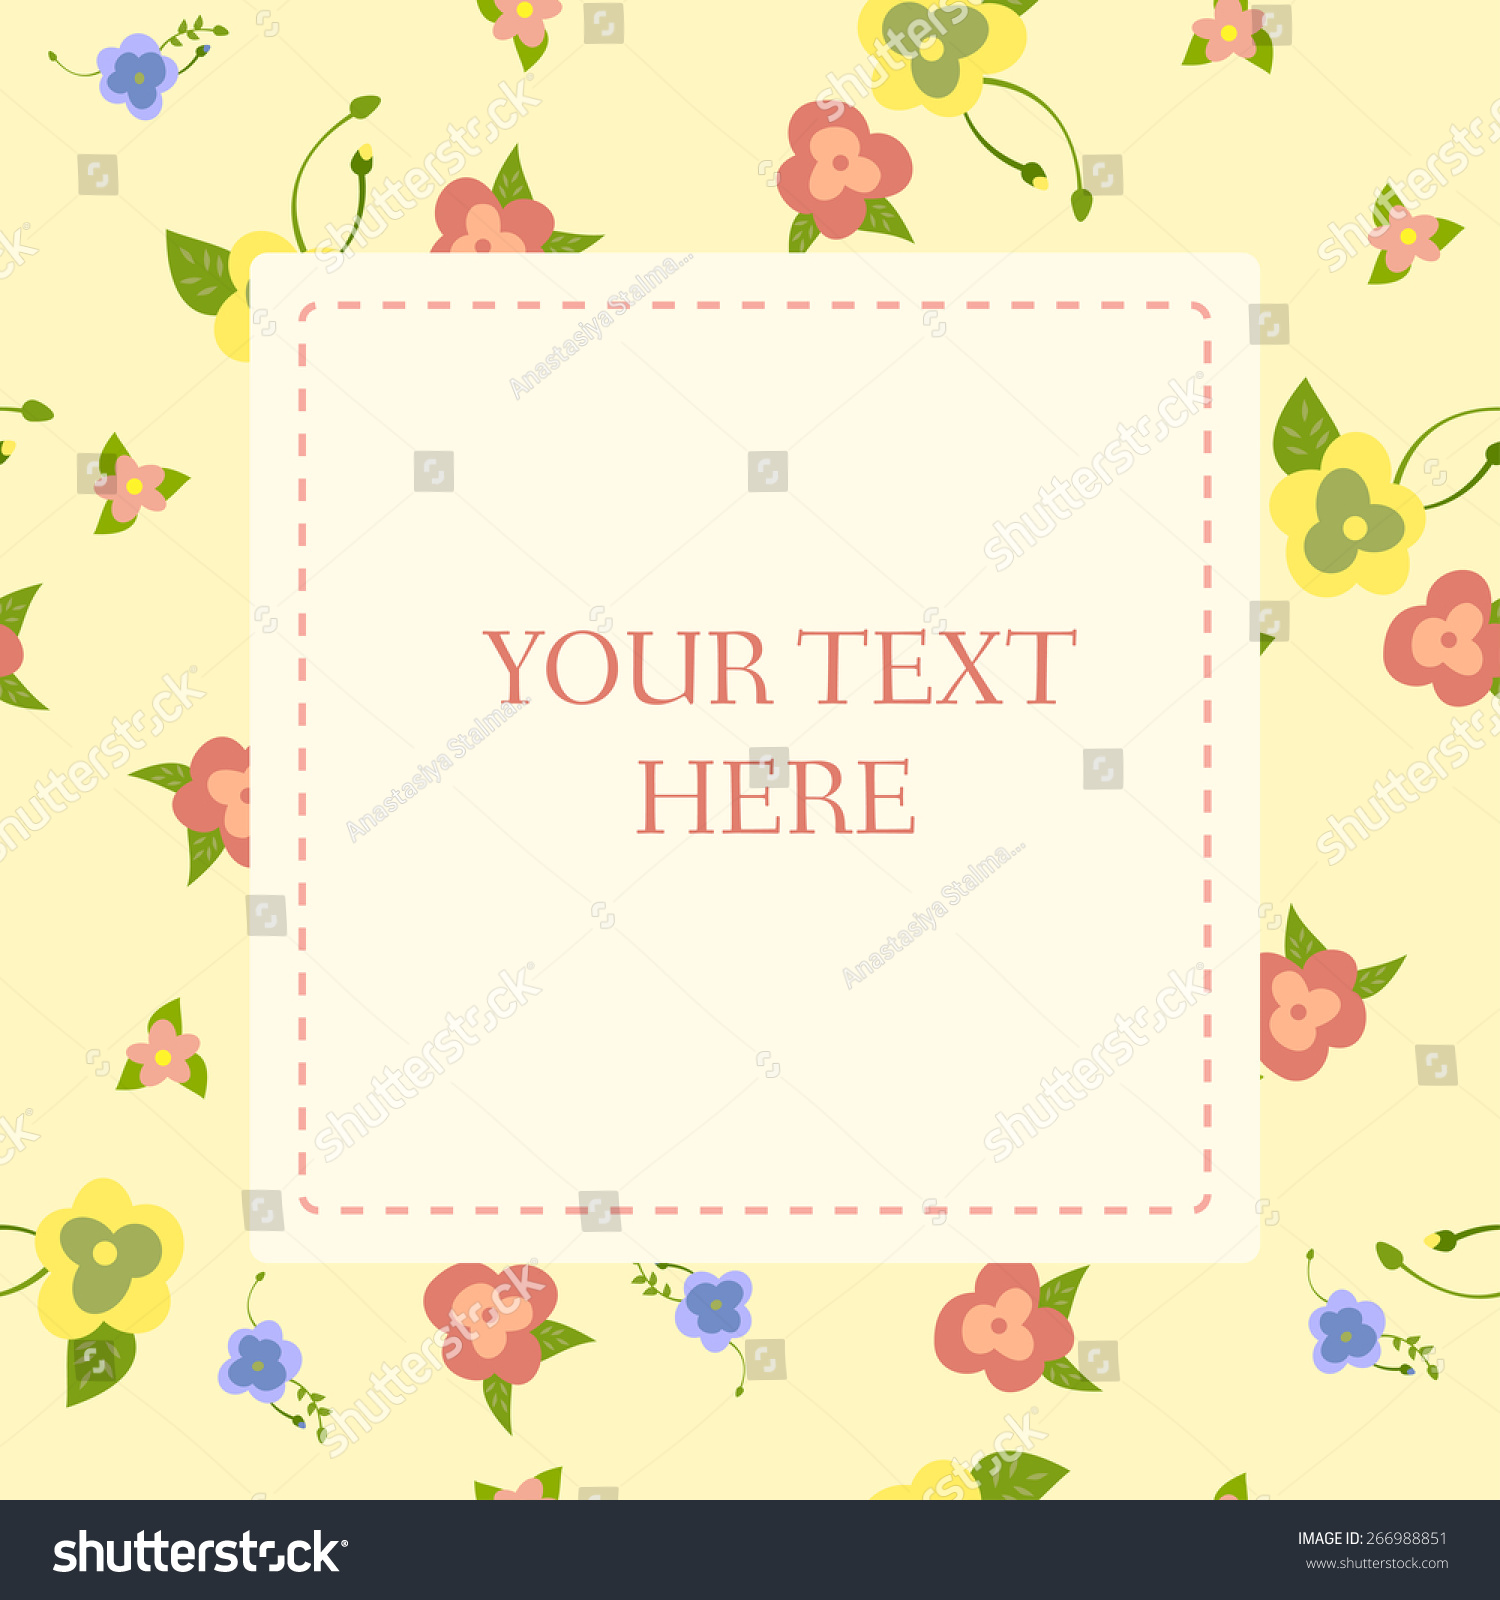 Congratulations on mothers day happy birthday stock vector 266988851 congratulations on mothers day happy birthday invitation to the feast greeting card with m4hsunfo